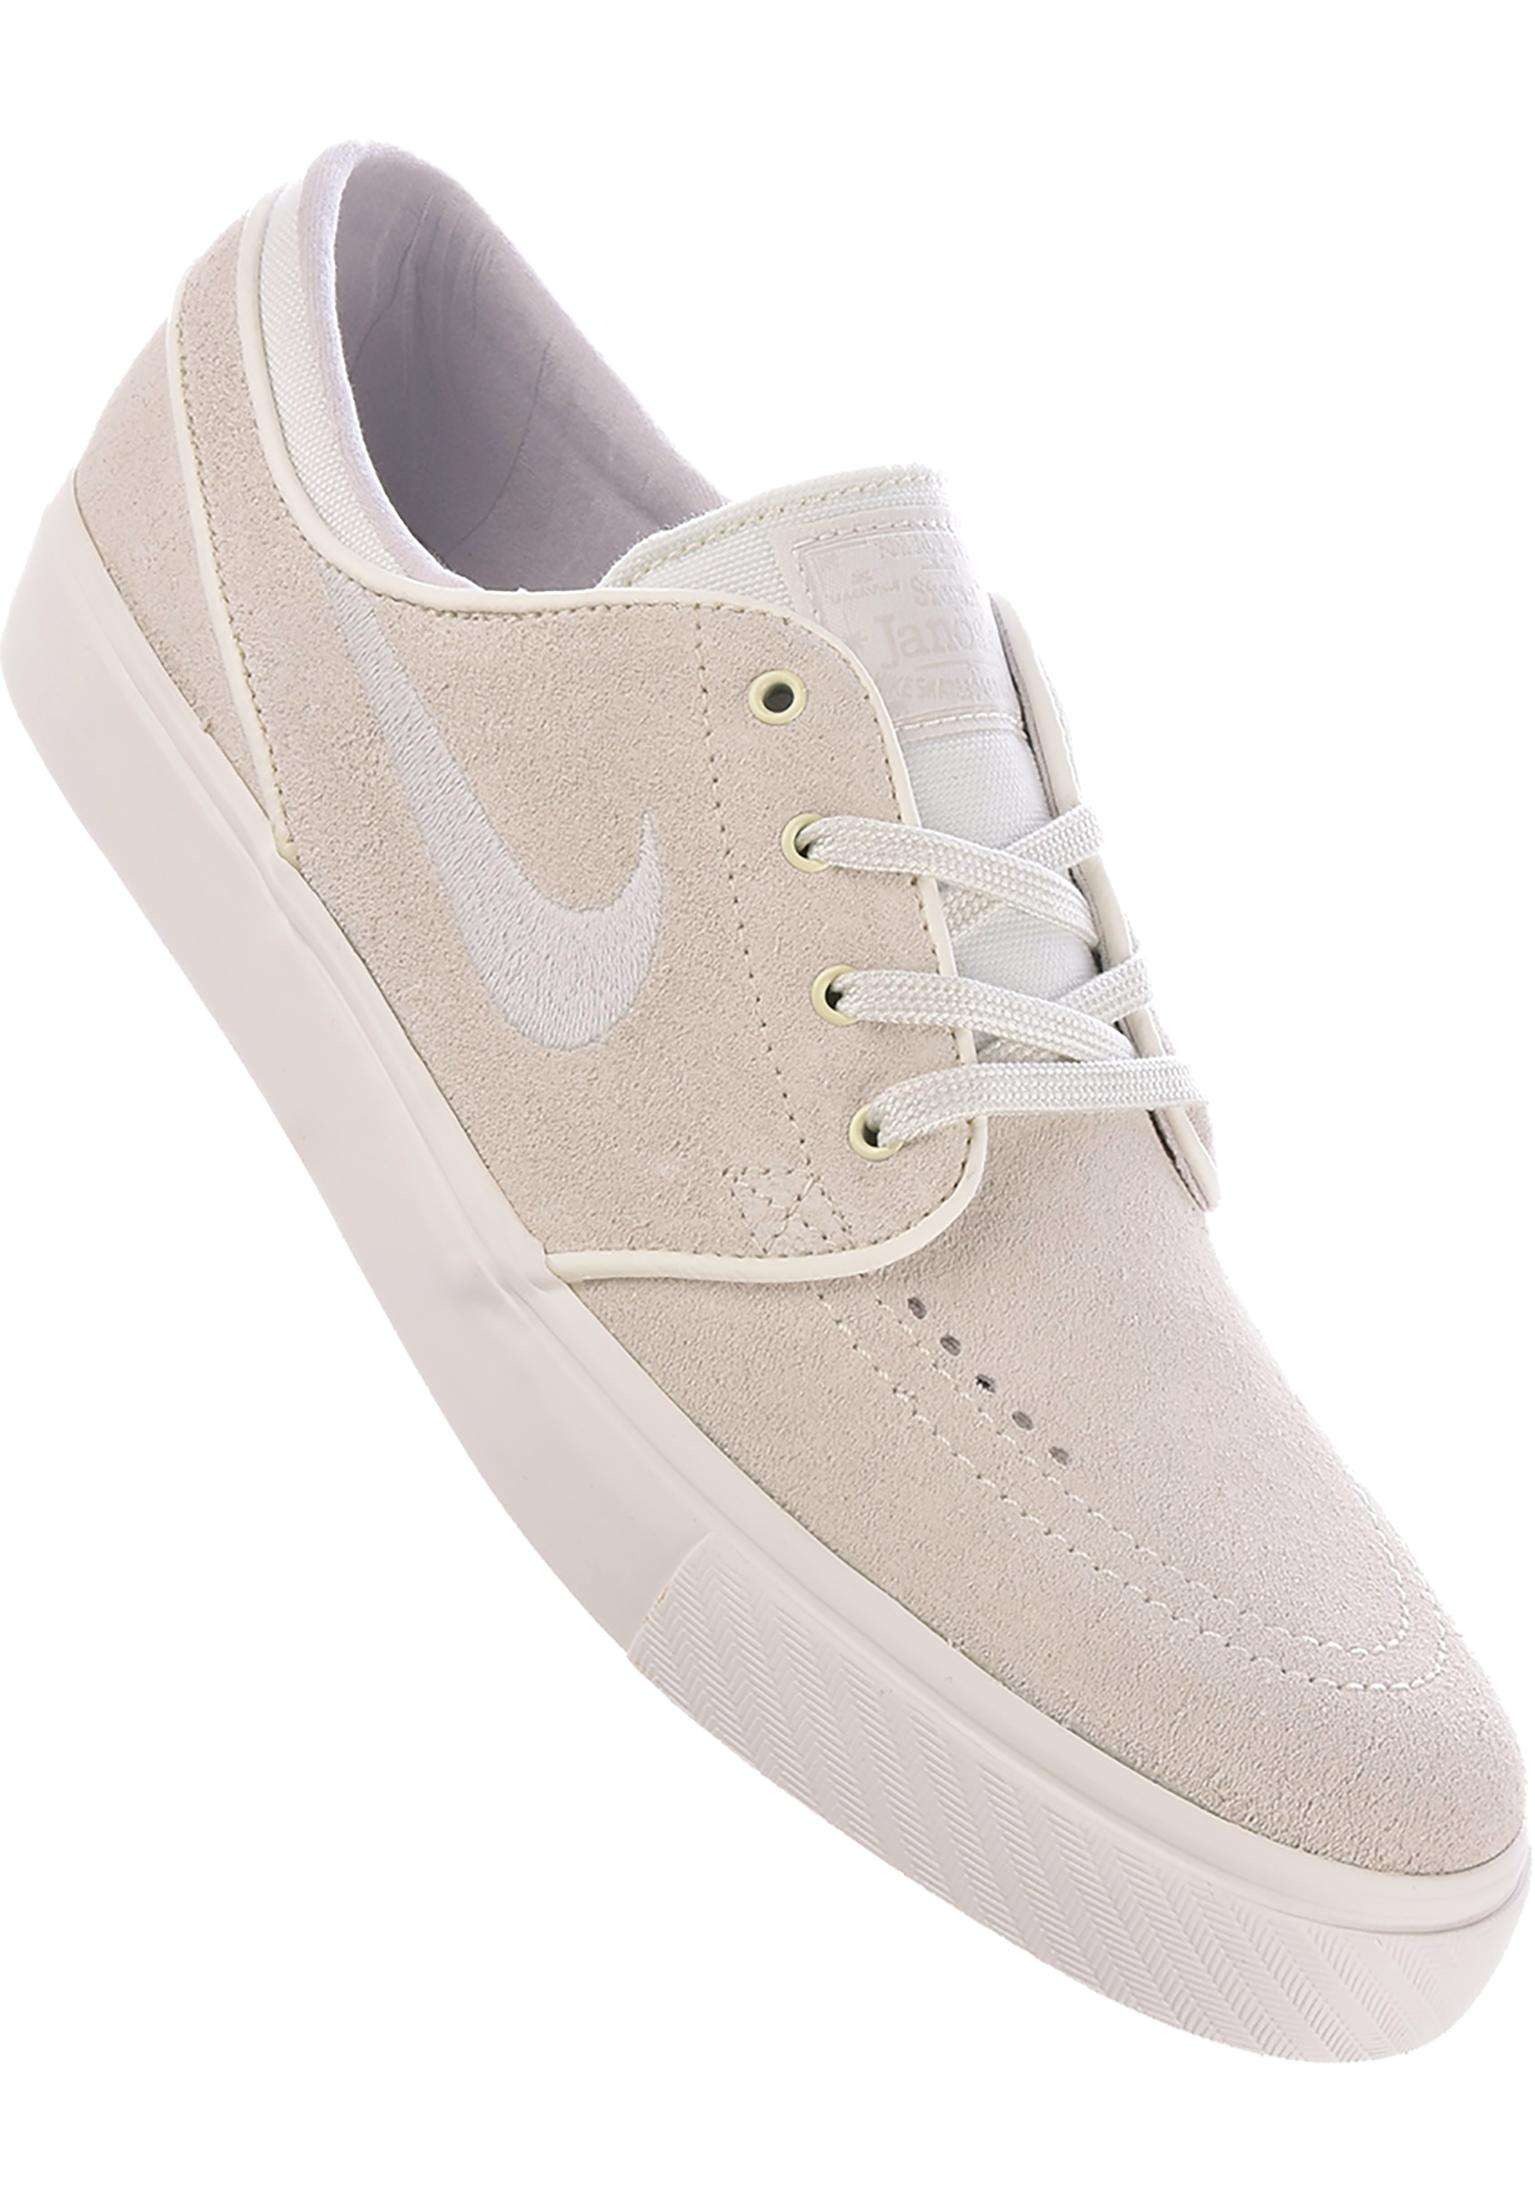 cheap for discount 24f1c bcfbb Zoom Stefan Janoski Nike SB All Shoes in summitwhite-vastgrey for Men    Titus